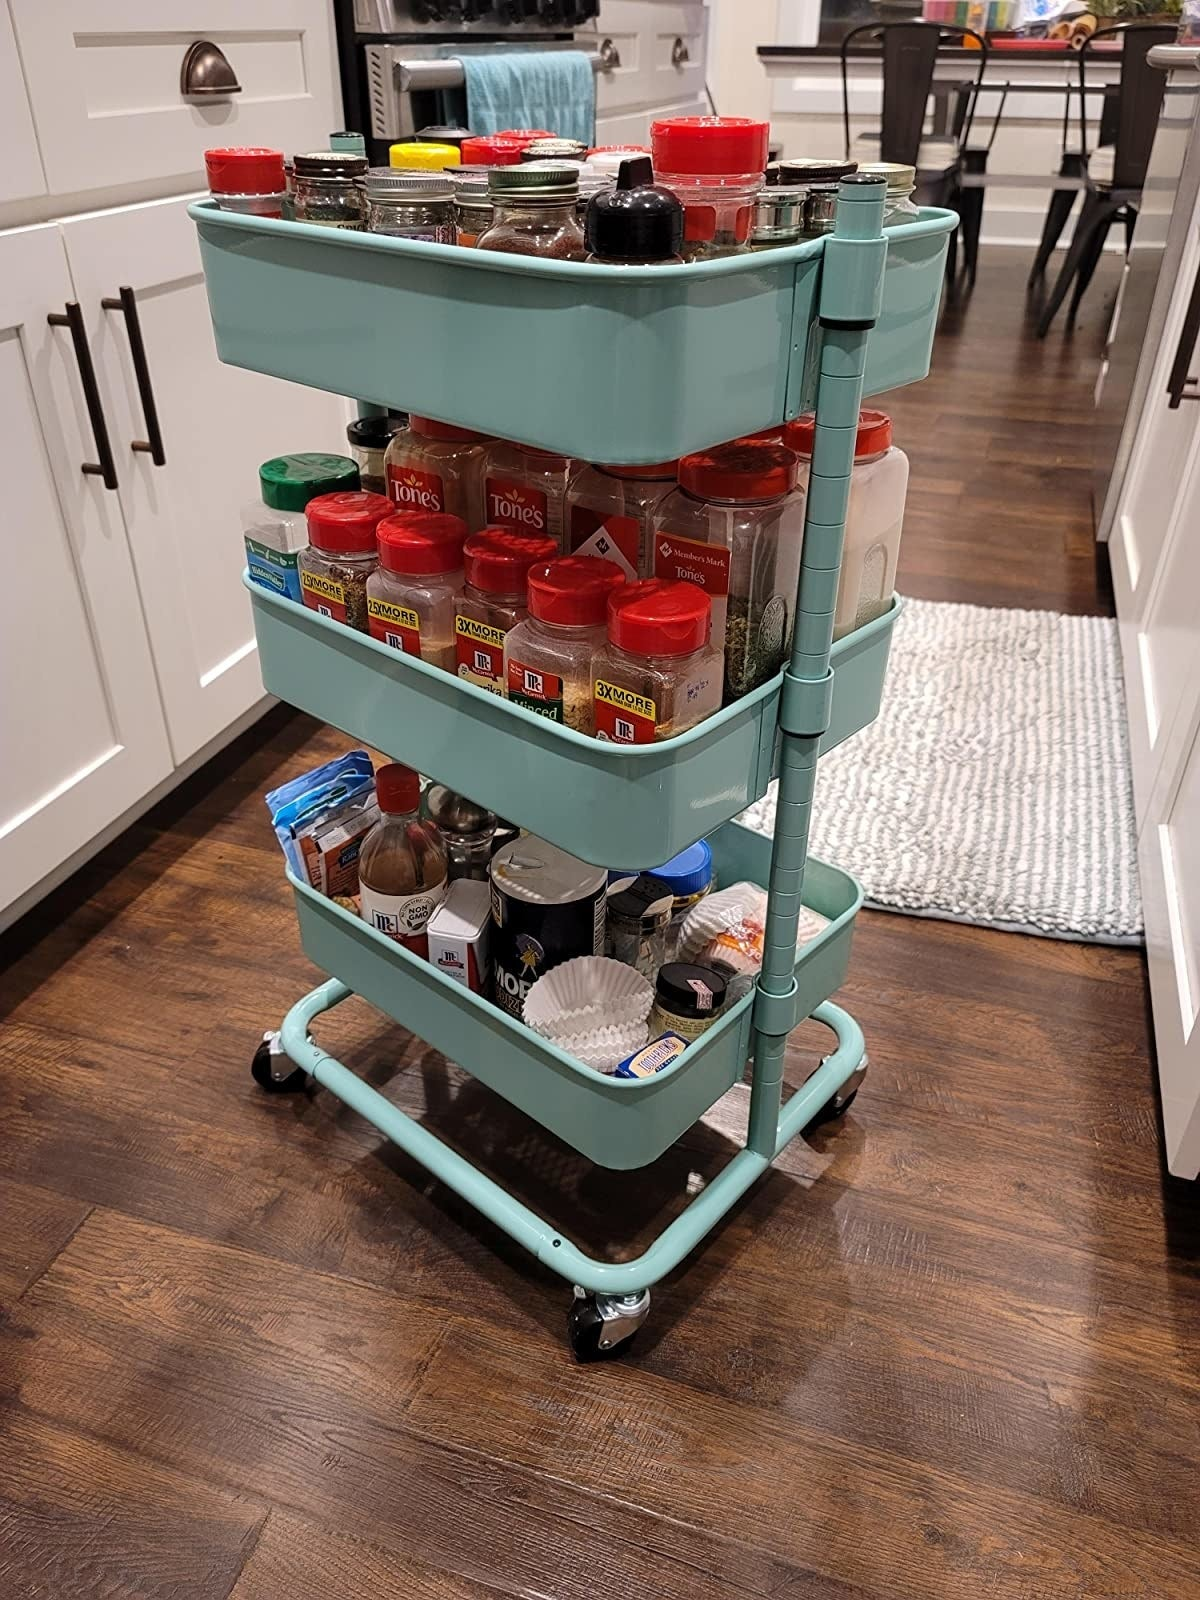 A reviewer using the aqua utility cart to hold pantry items